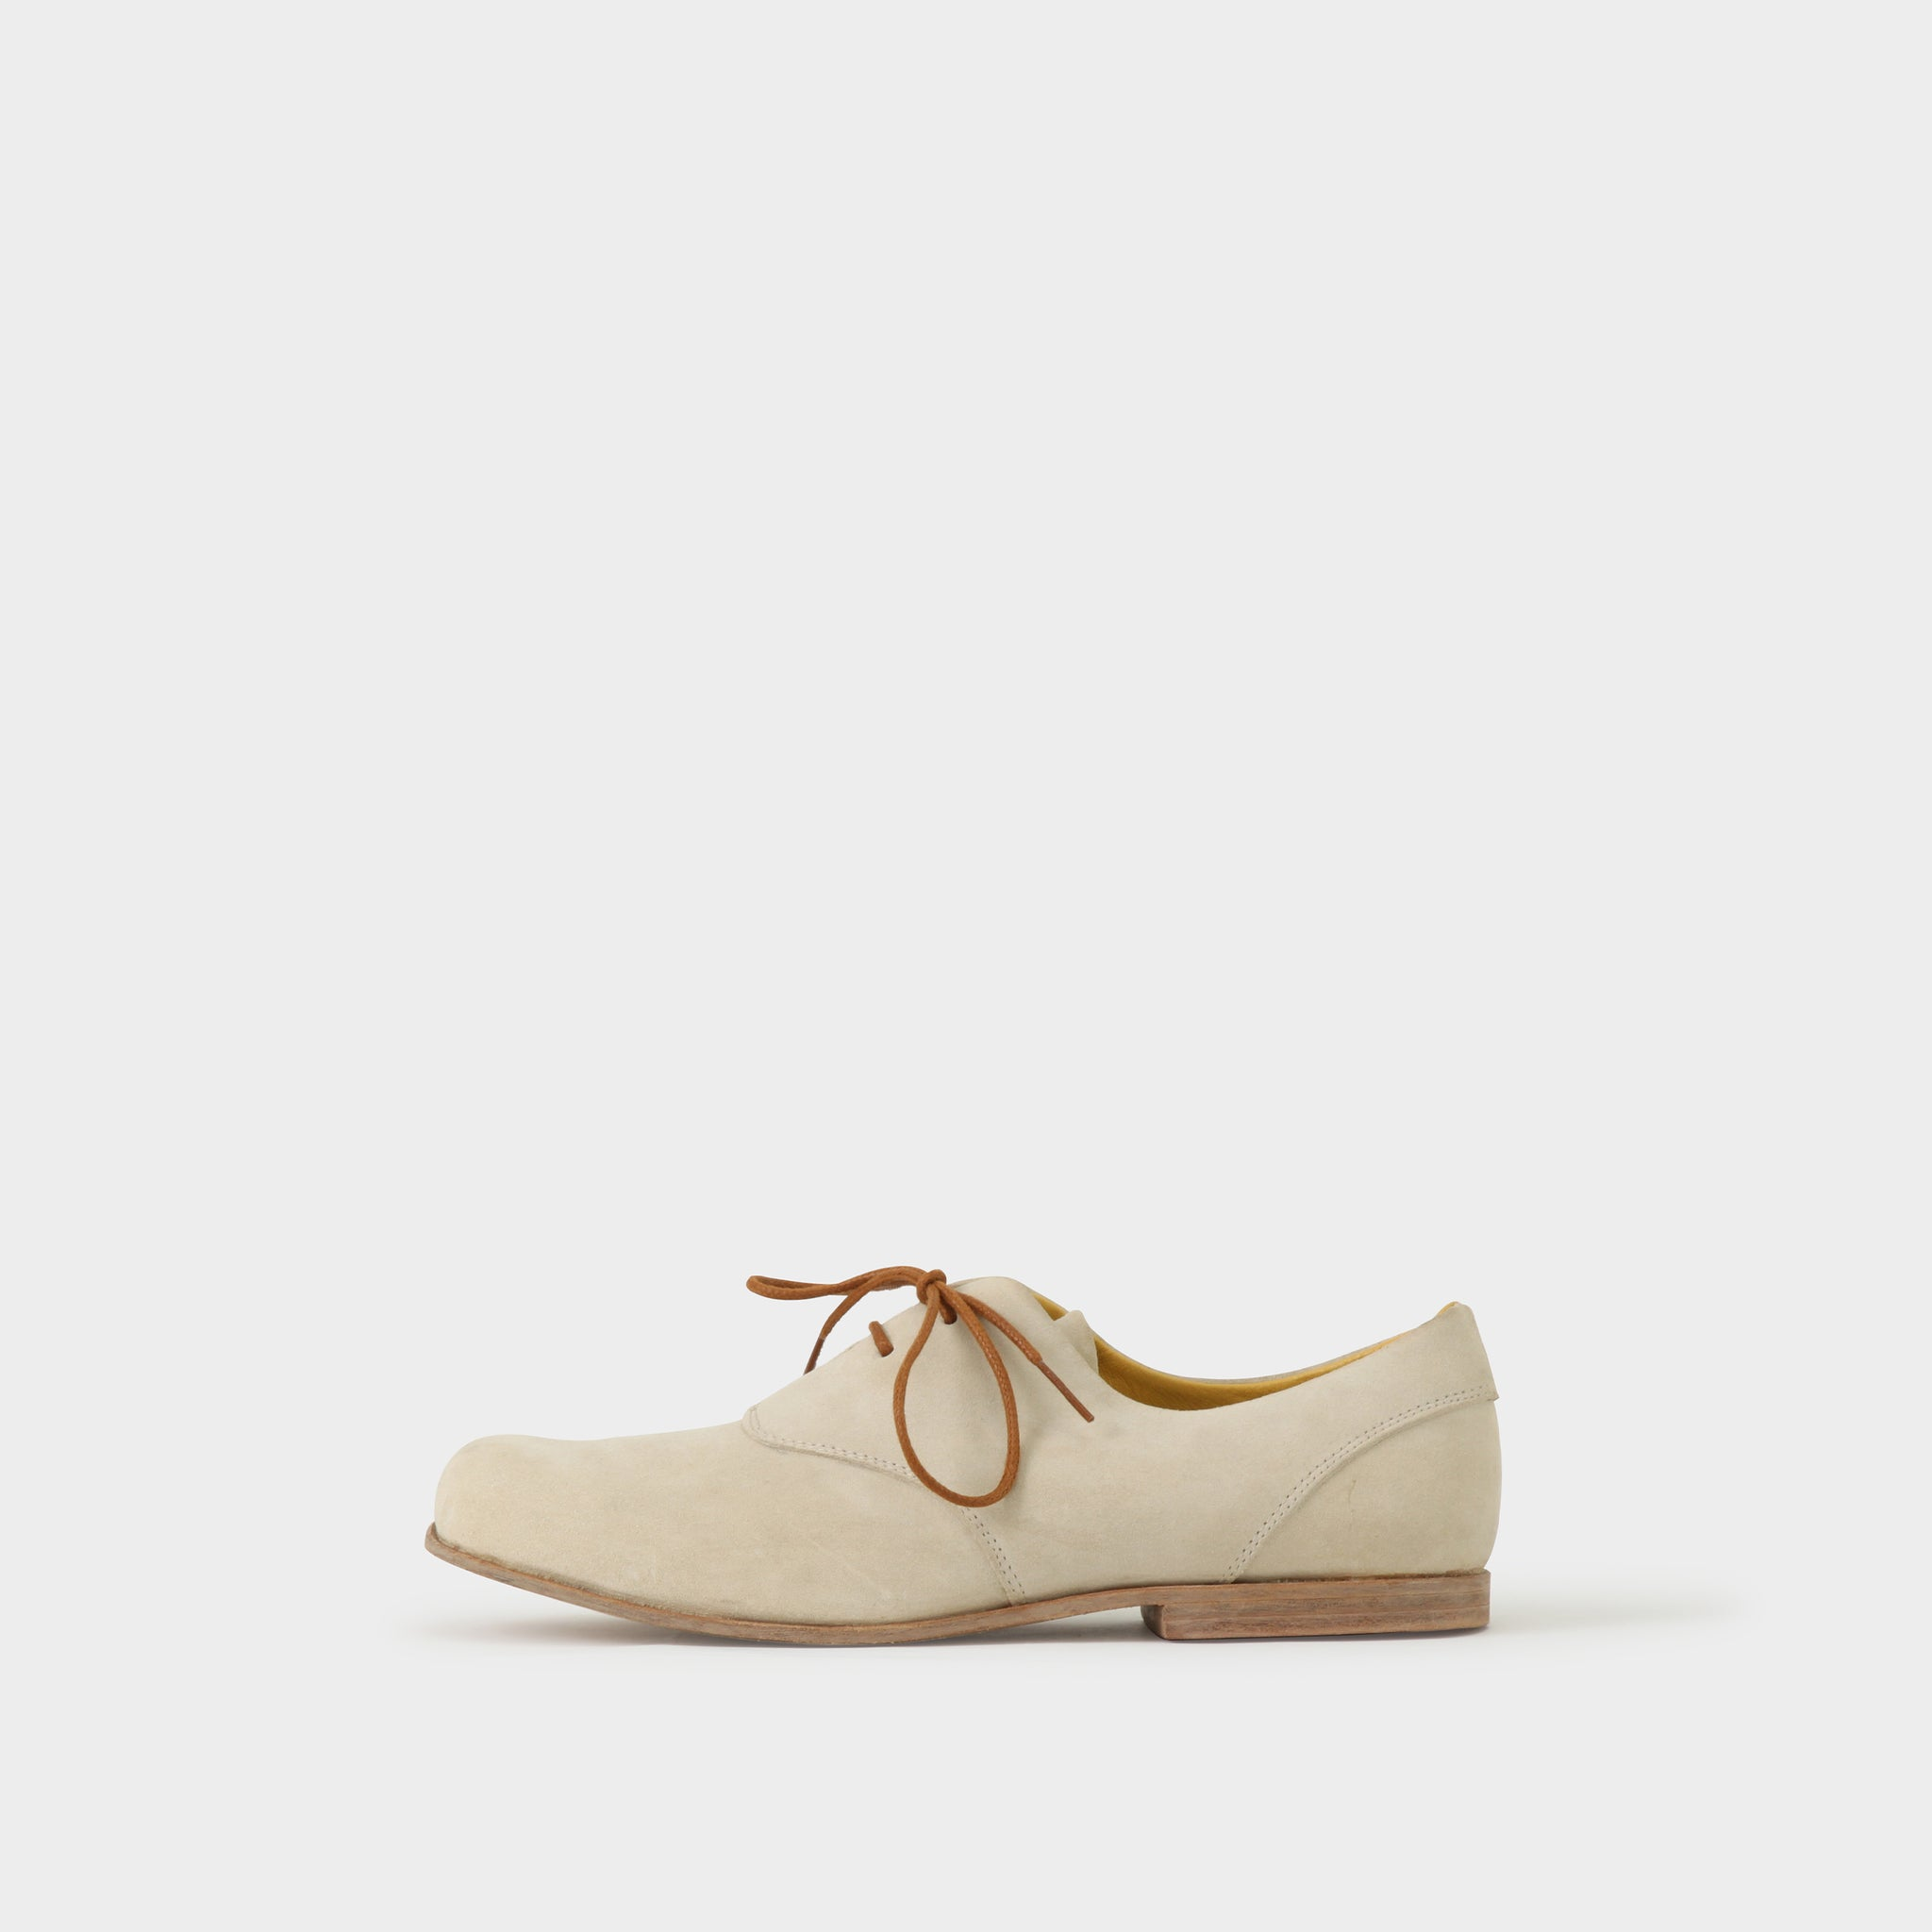 Geoffrey B Small Handmade White Nubuck Lace-up Oxford